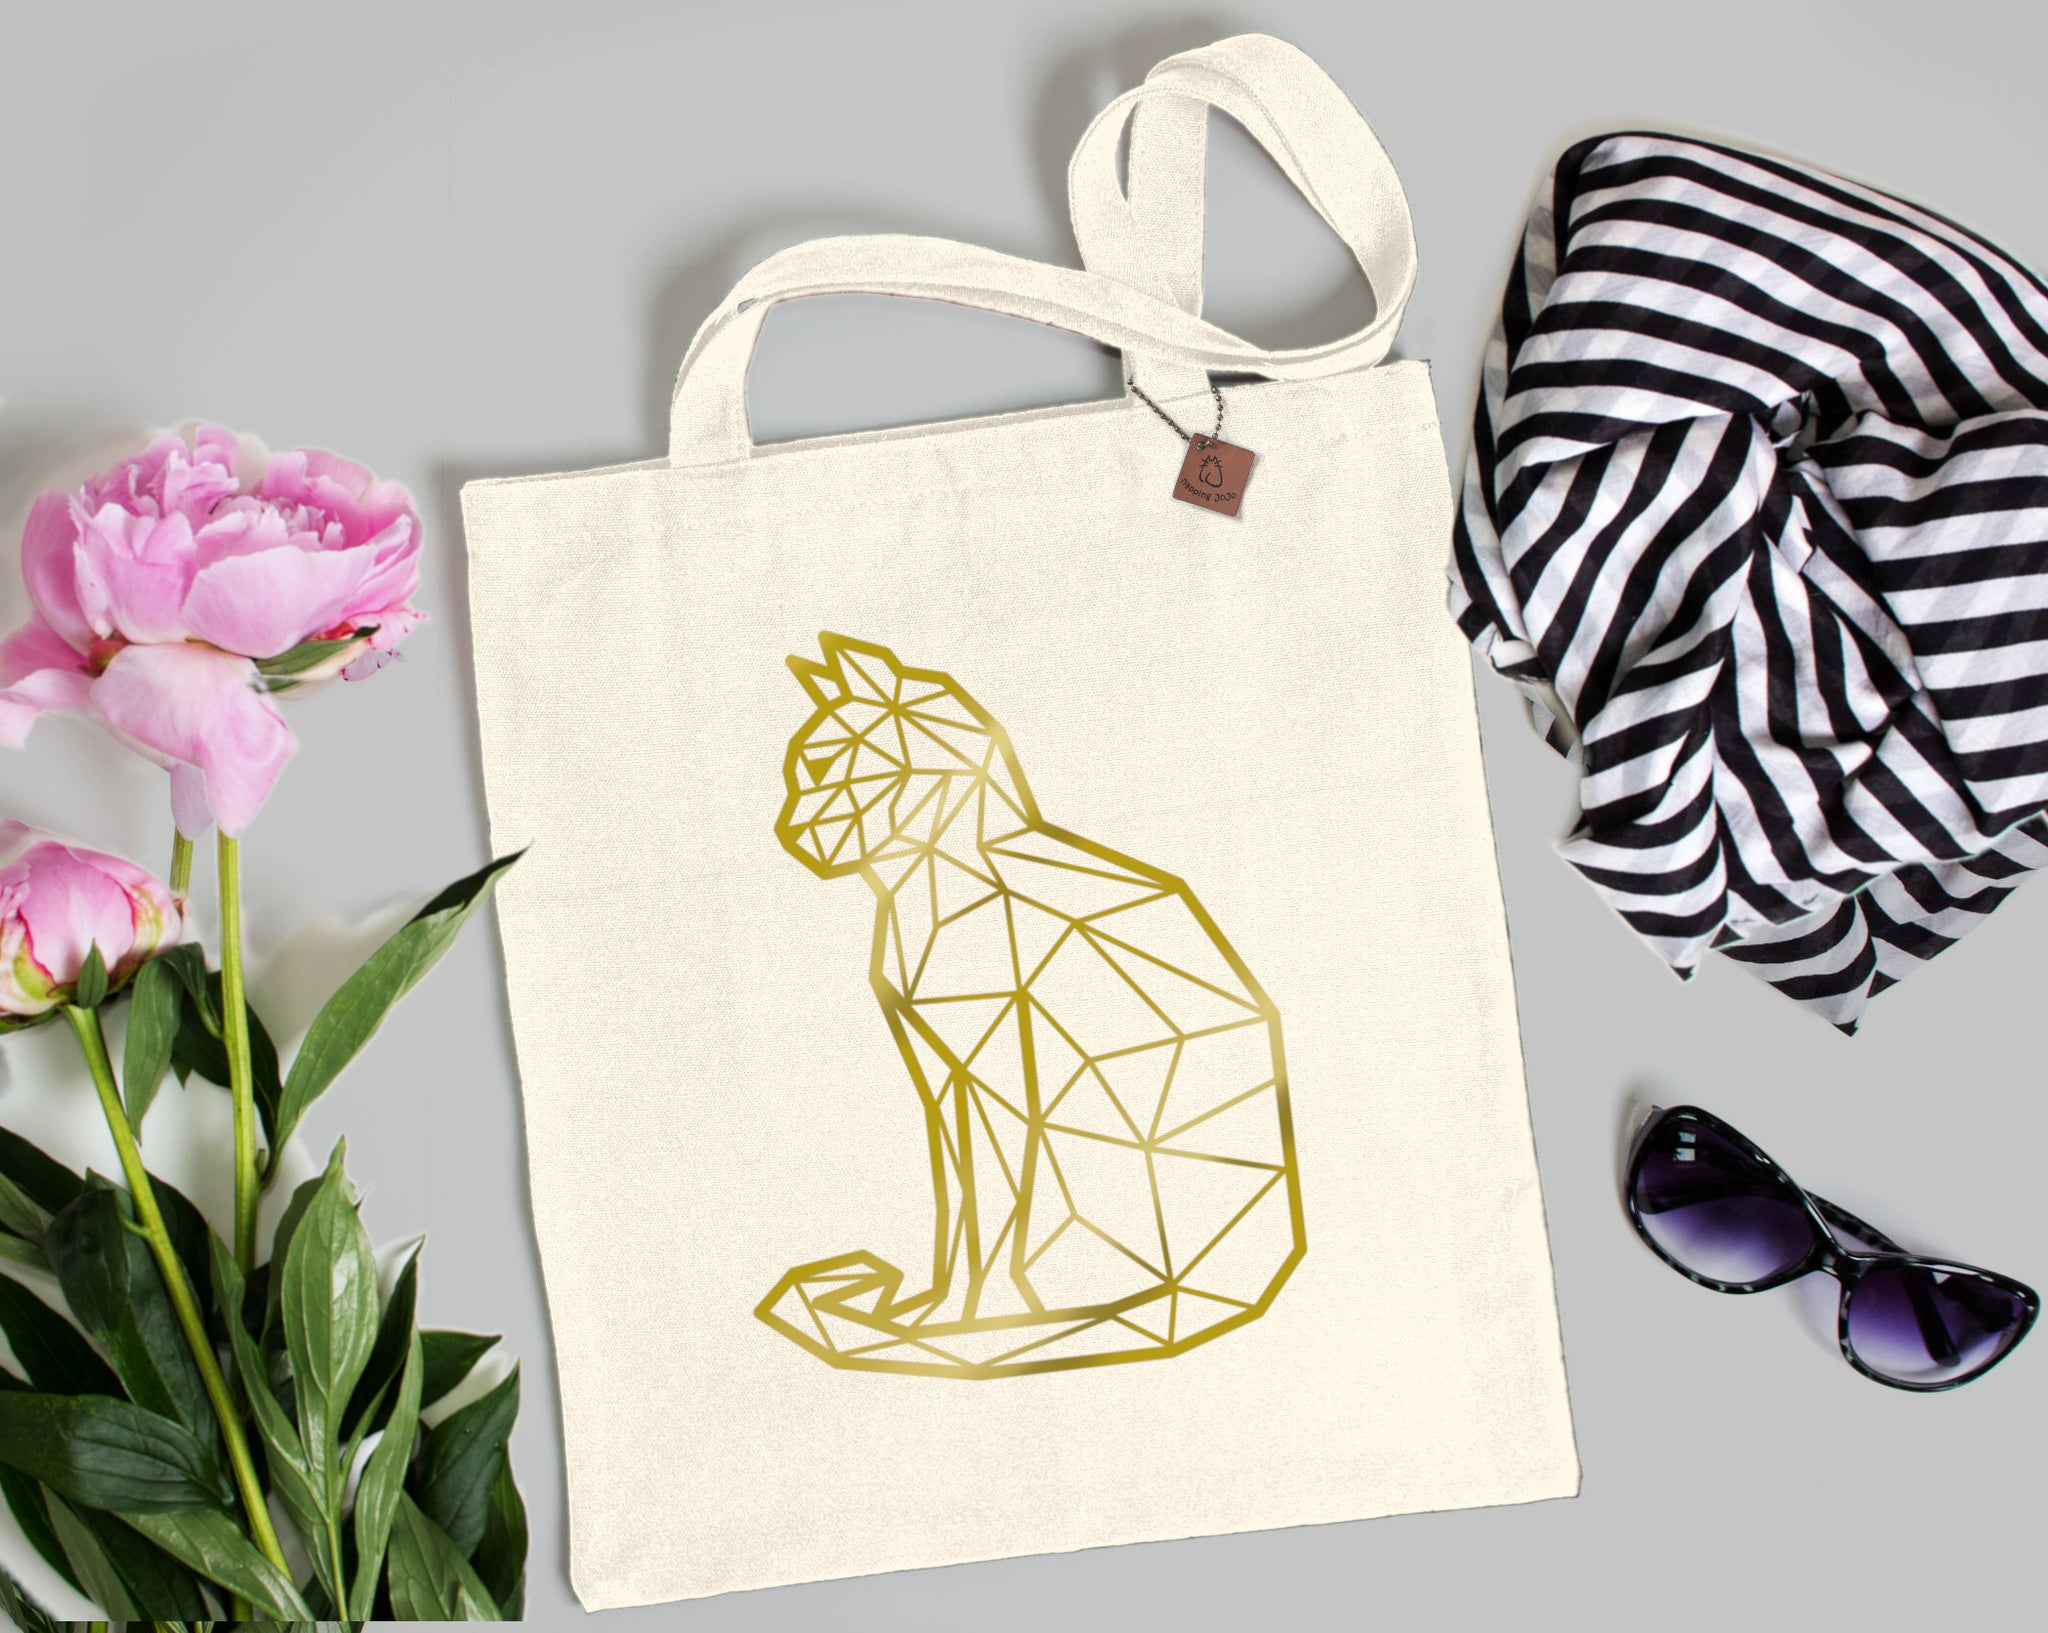 gold cat print on a beige tote bag